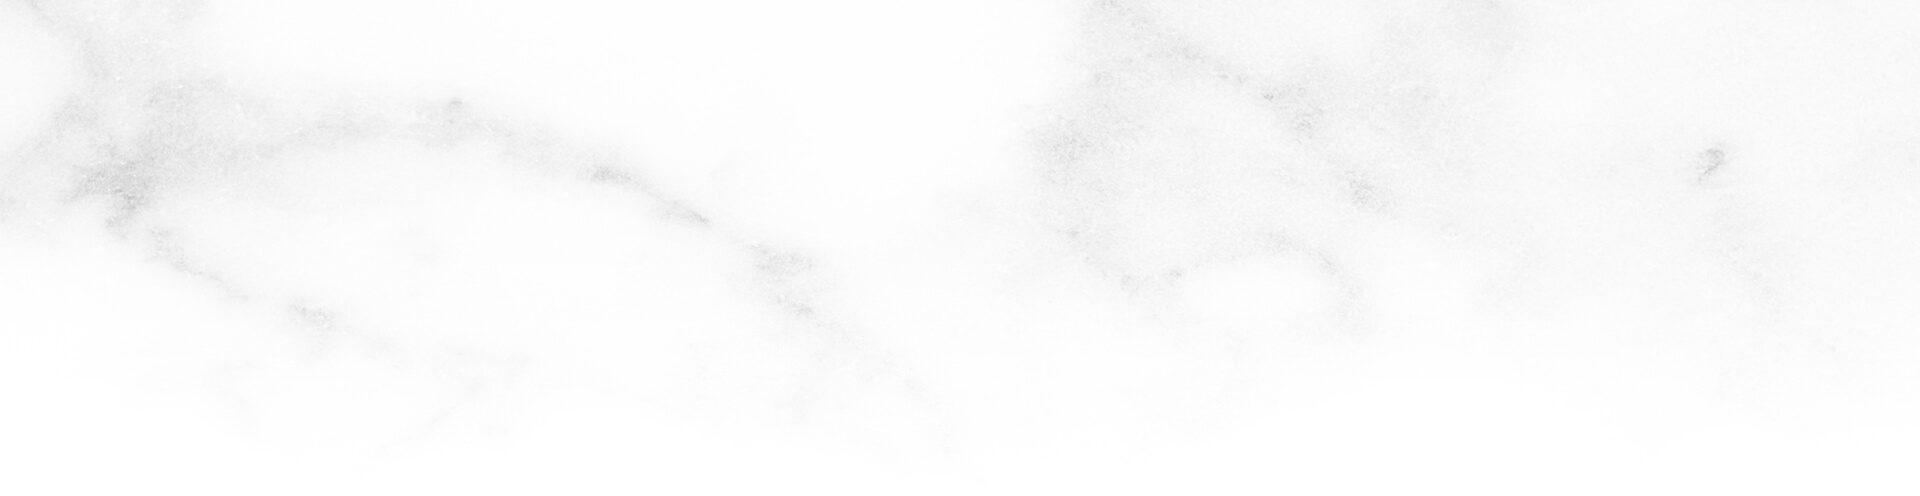 marble header image